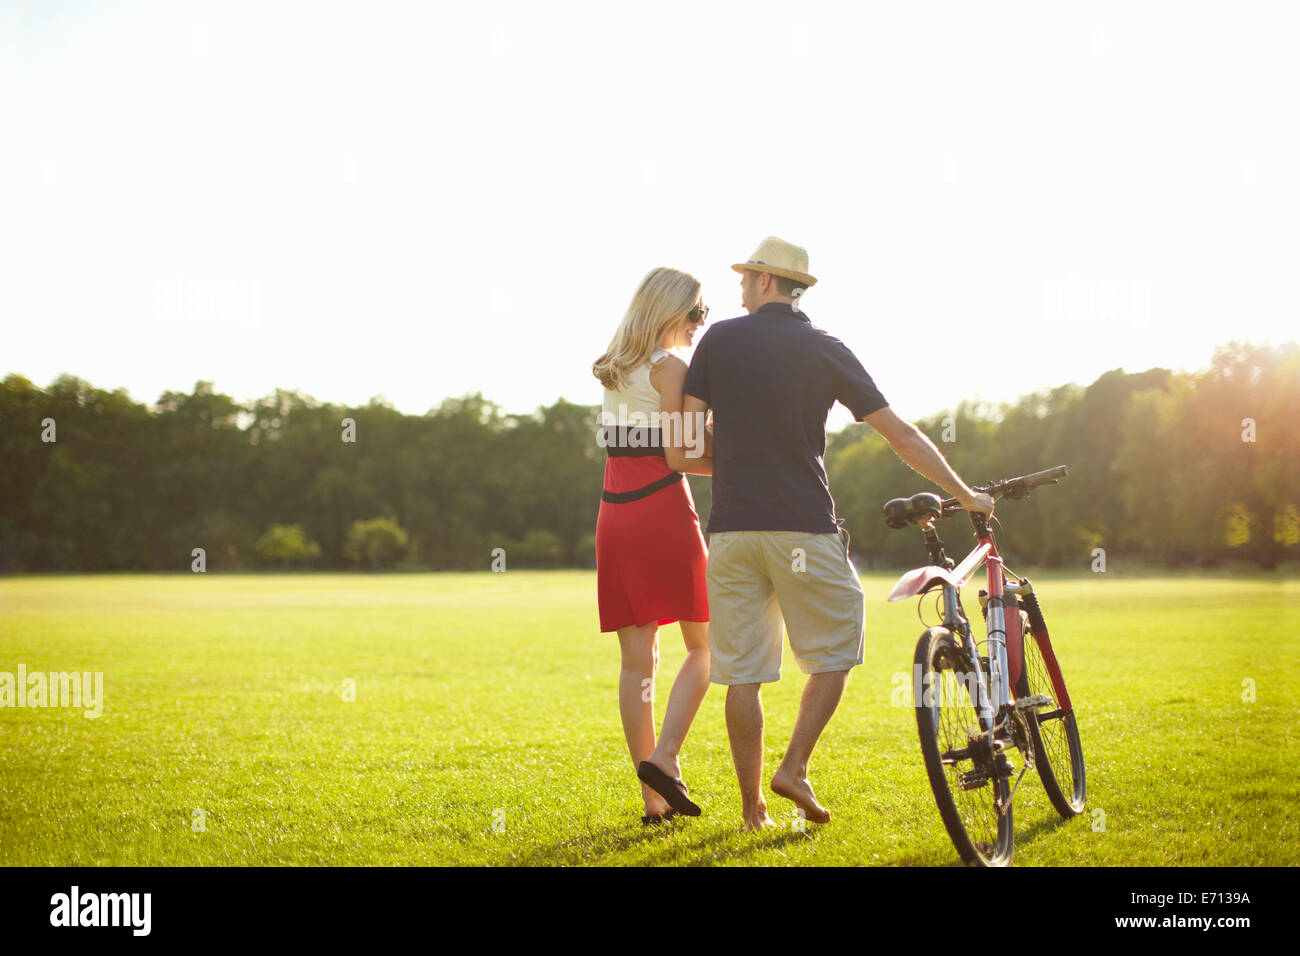 Couple pushing cycle whilst strolling in park - Stock Image